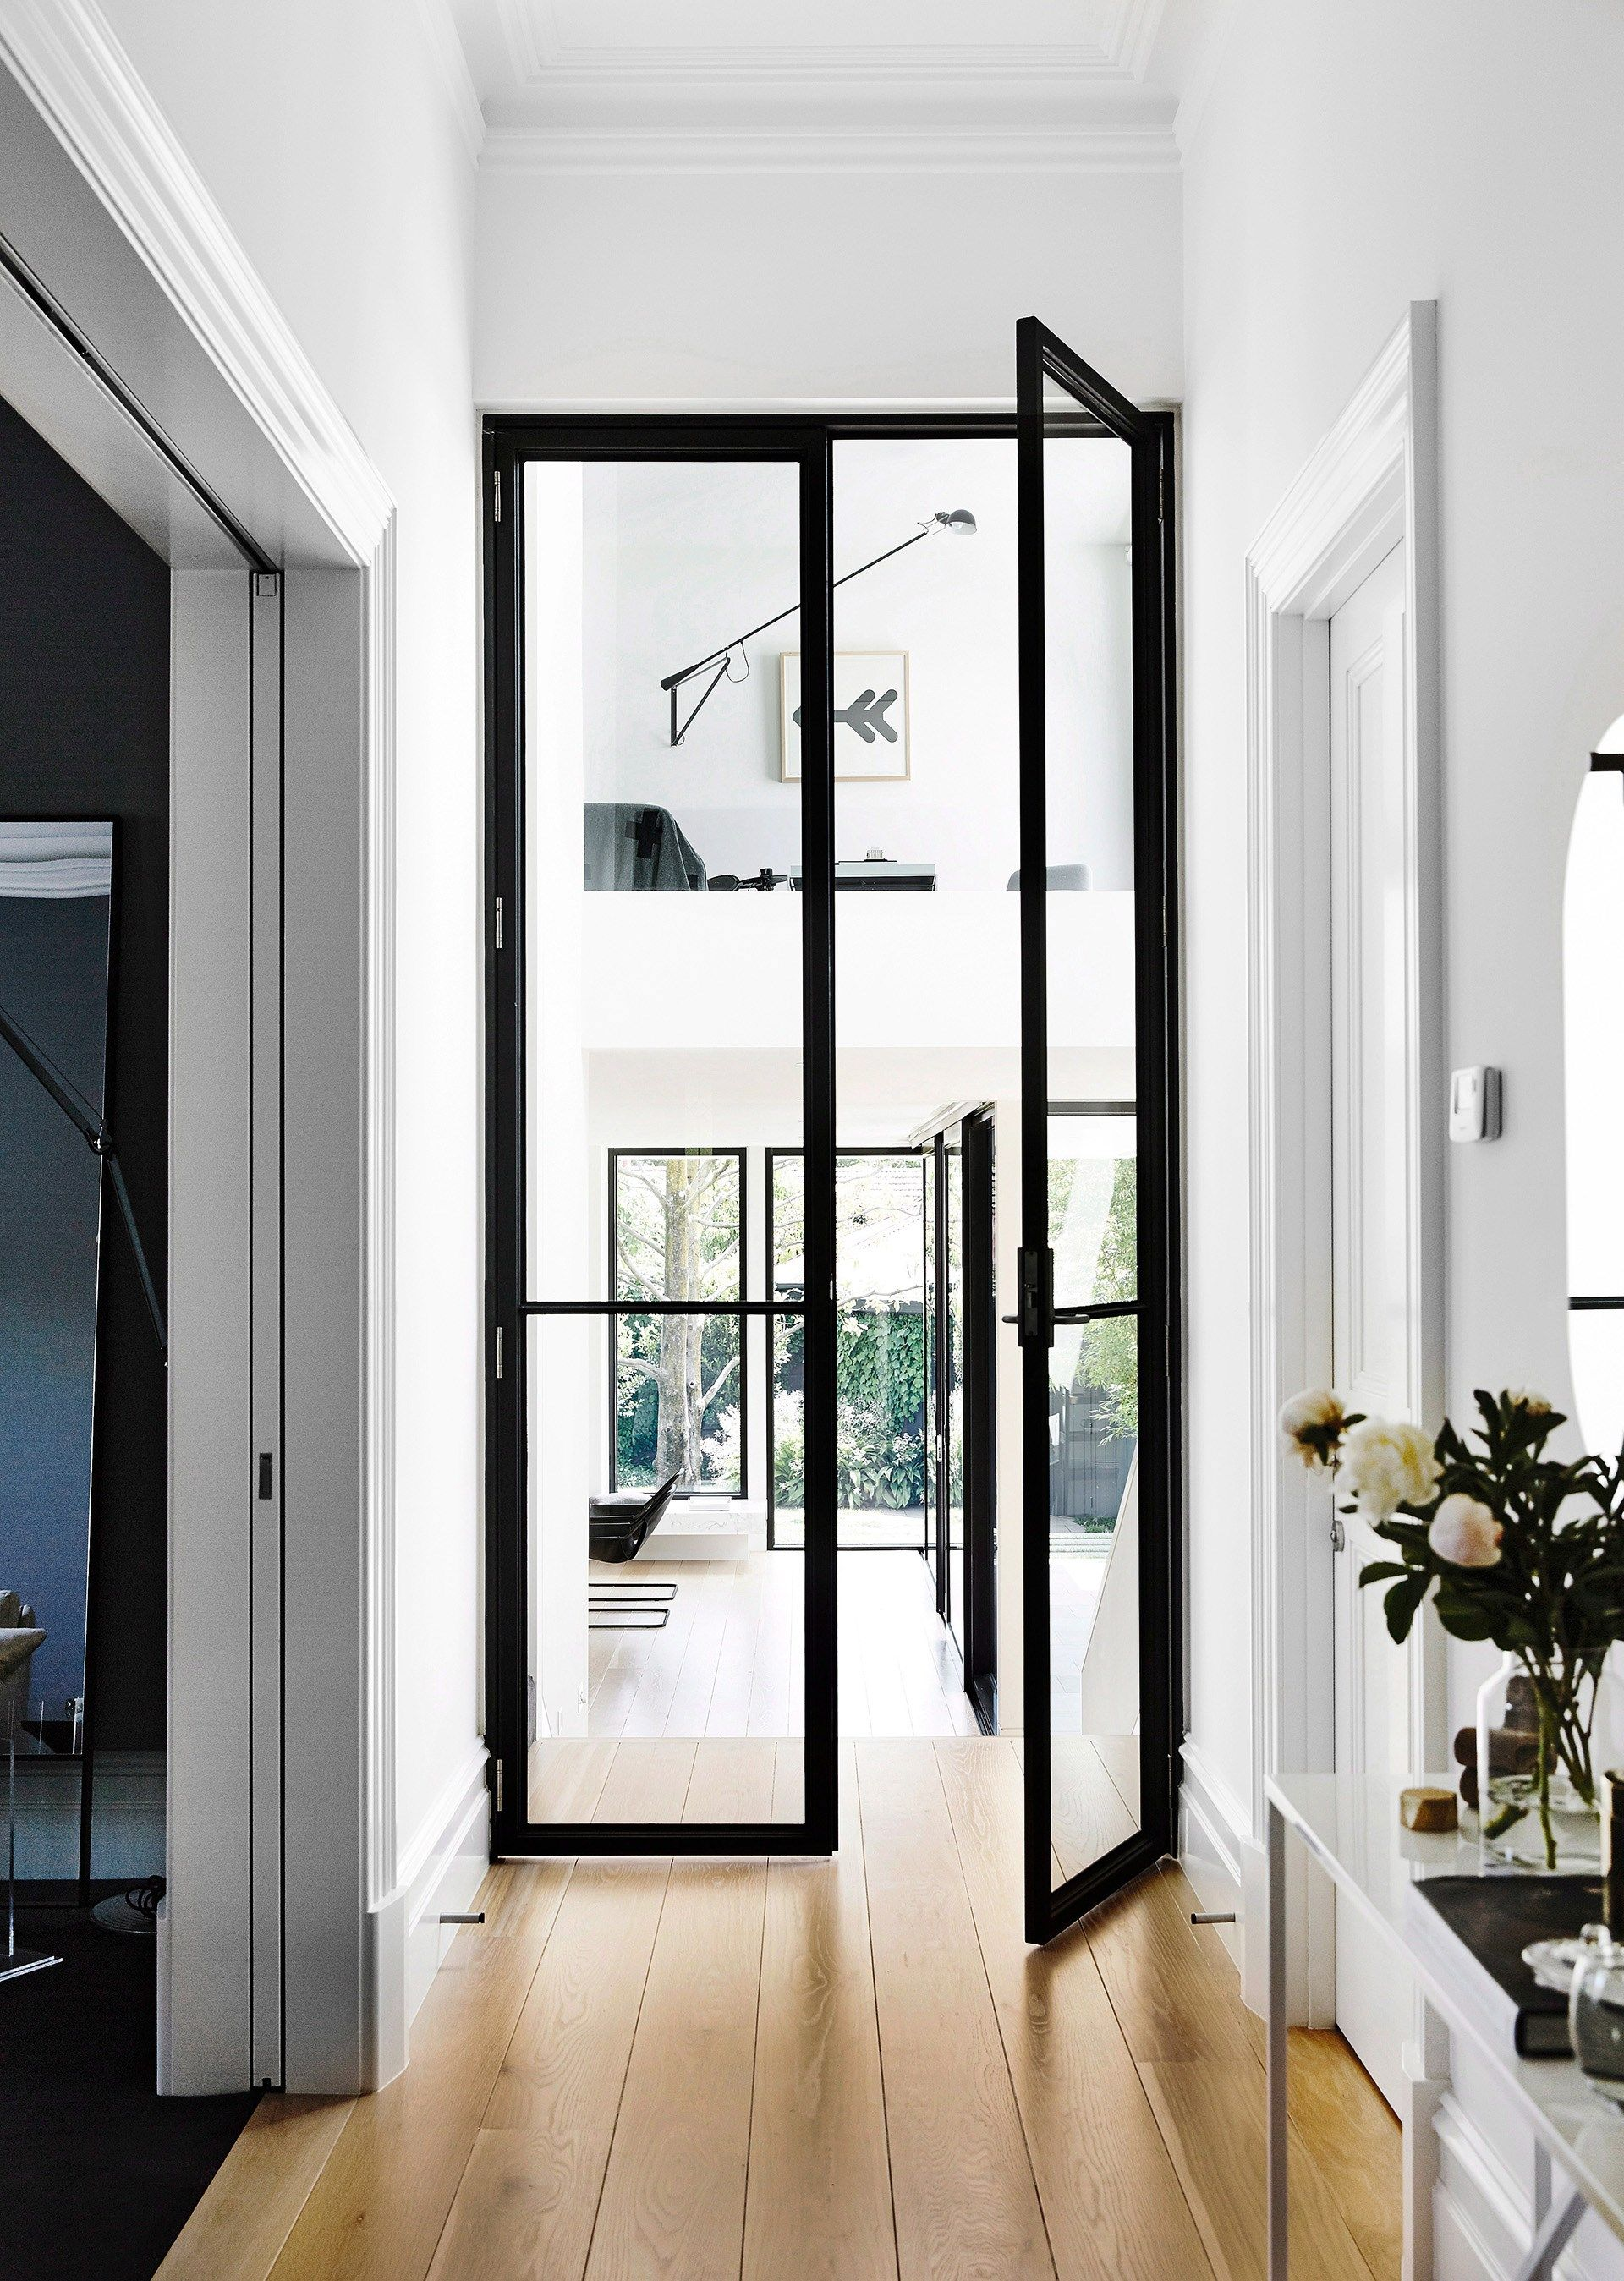 Introduce that wow factor by using glass in internal spaces so ...